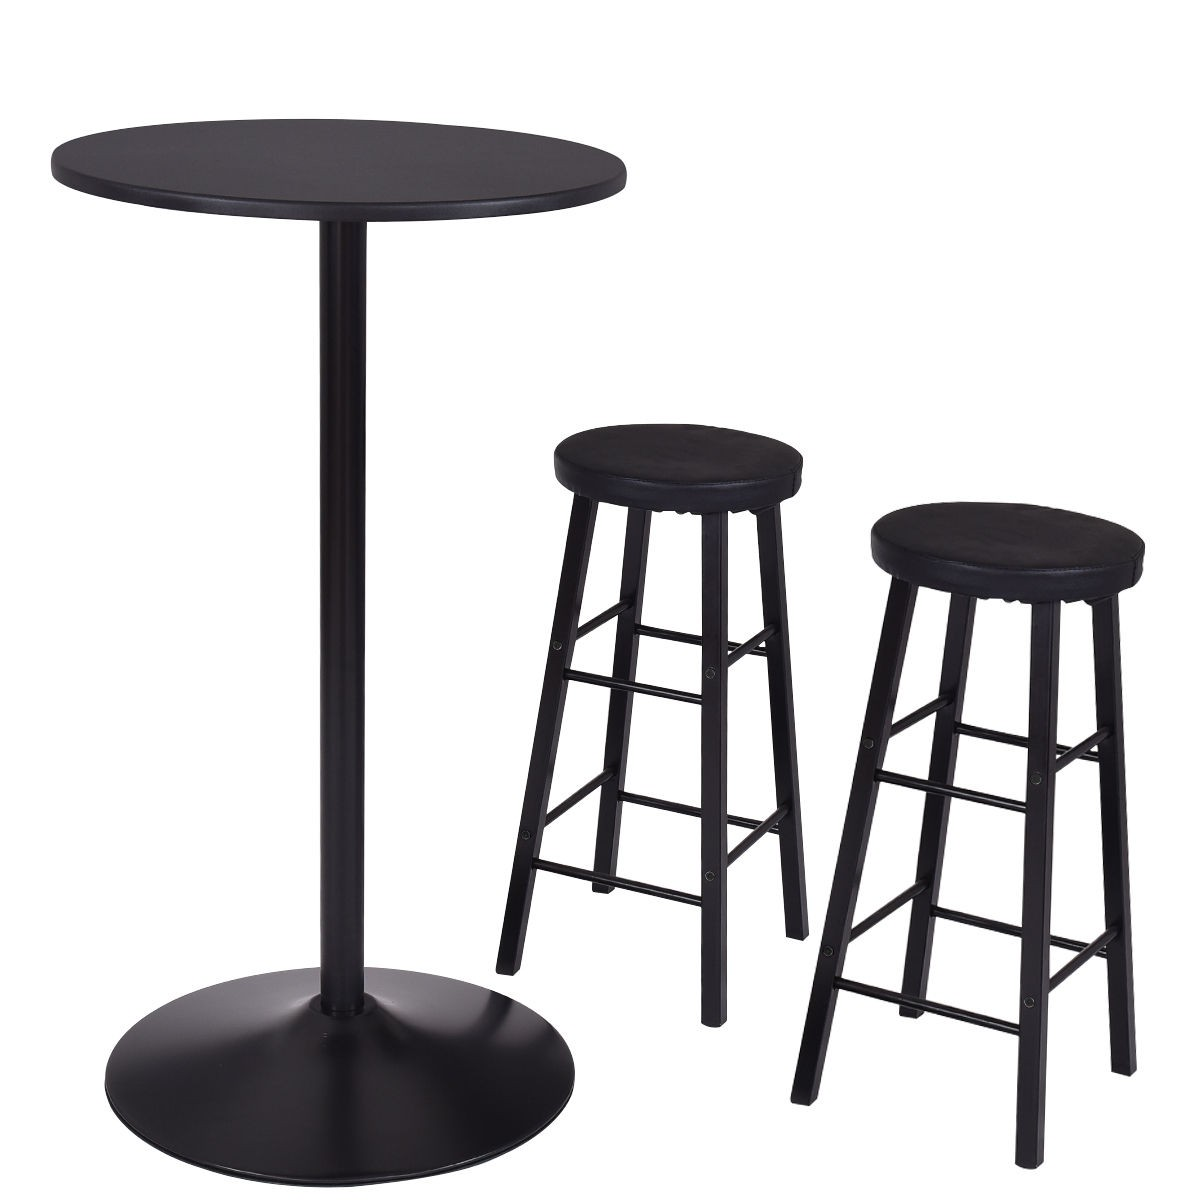 3PC Set Round Bar Table + 2 Stools Seat Chair Breakfast Bistro ...